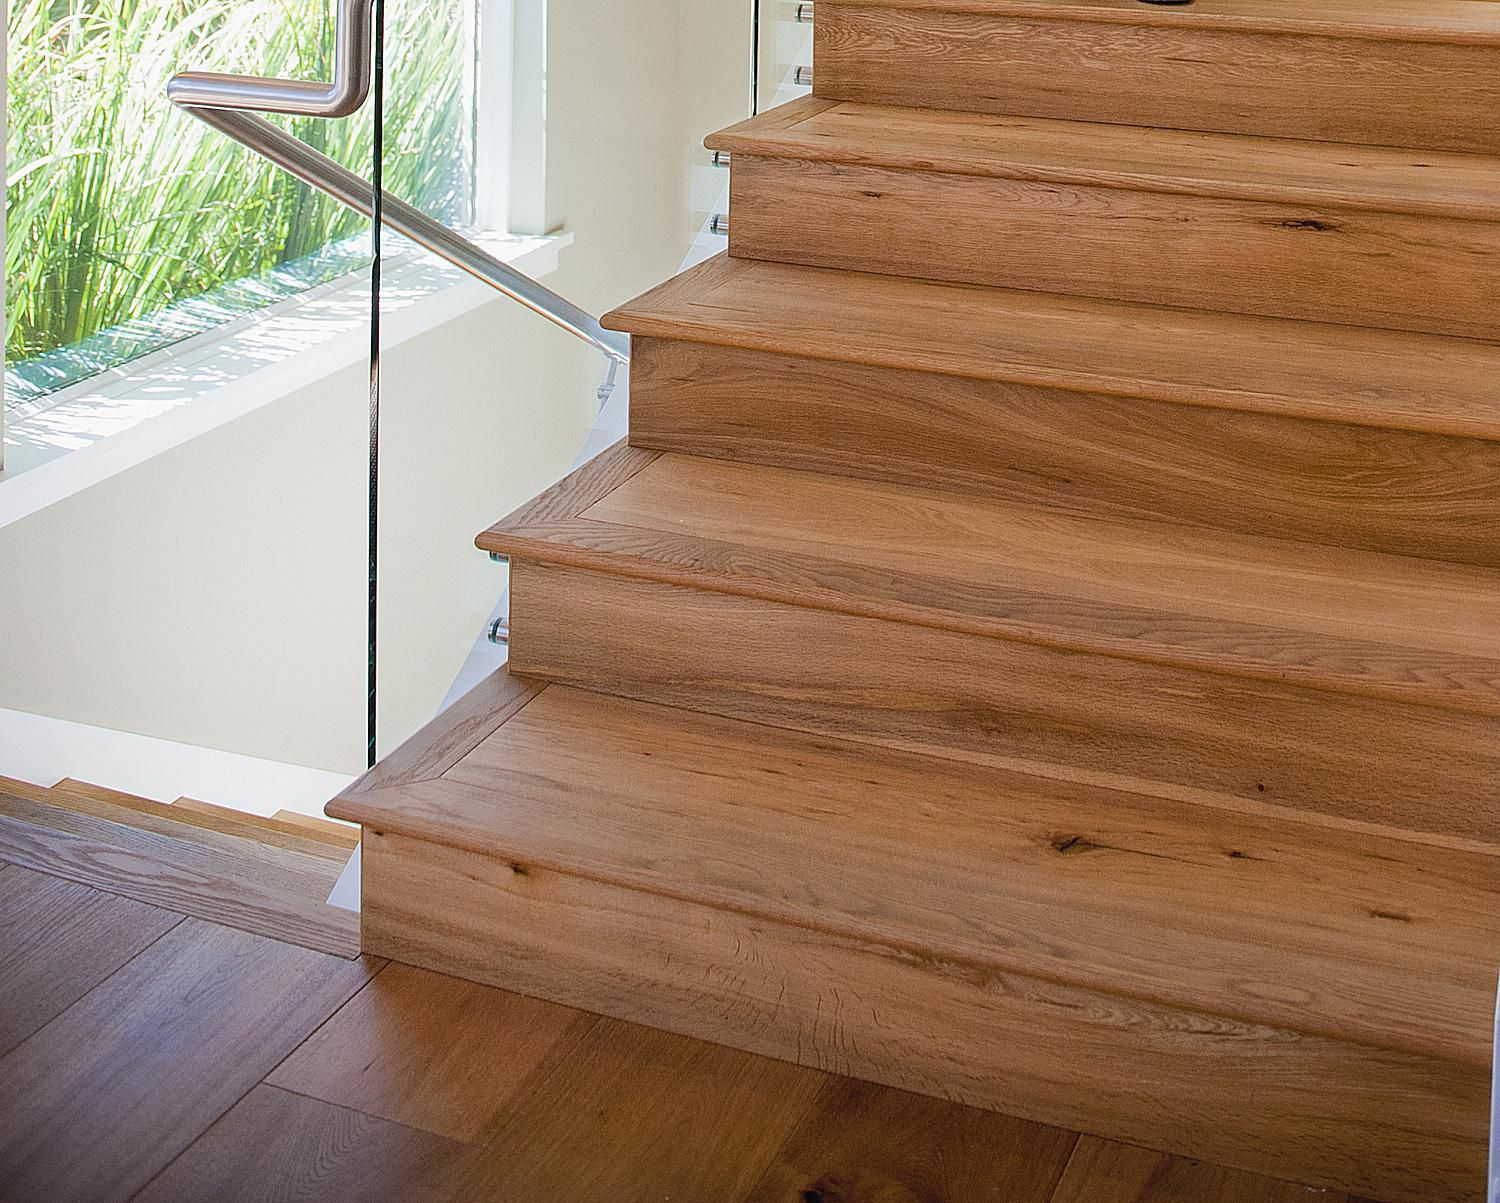 Uncategorized Feng Shui Flooring 6 steps to a good feng shui floor plan of staircase location and design